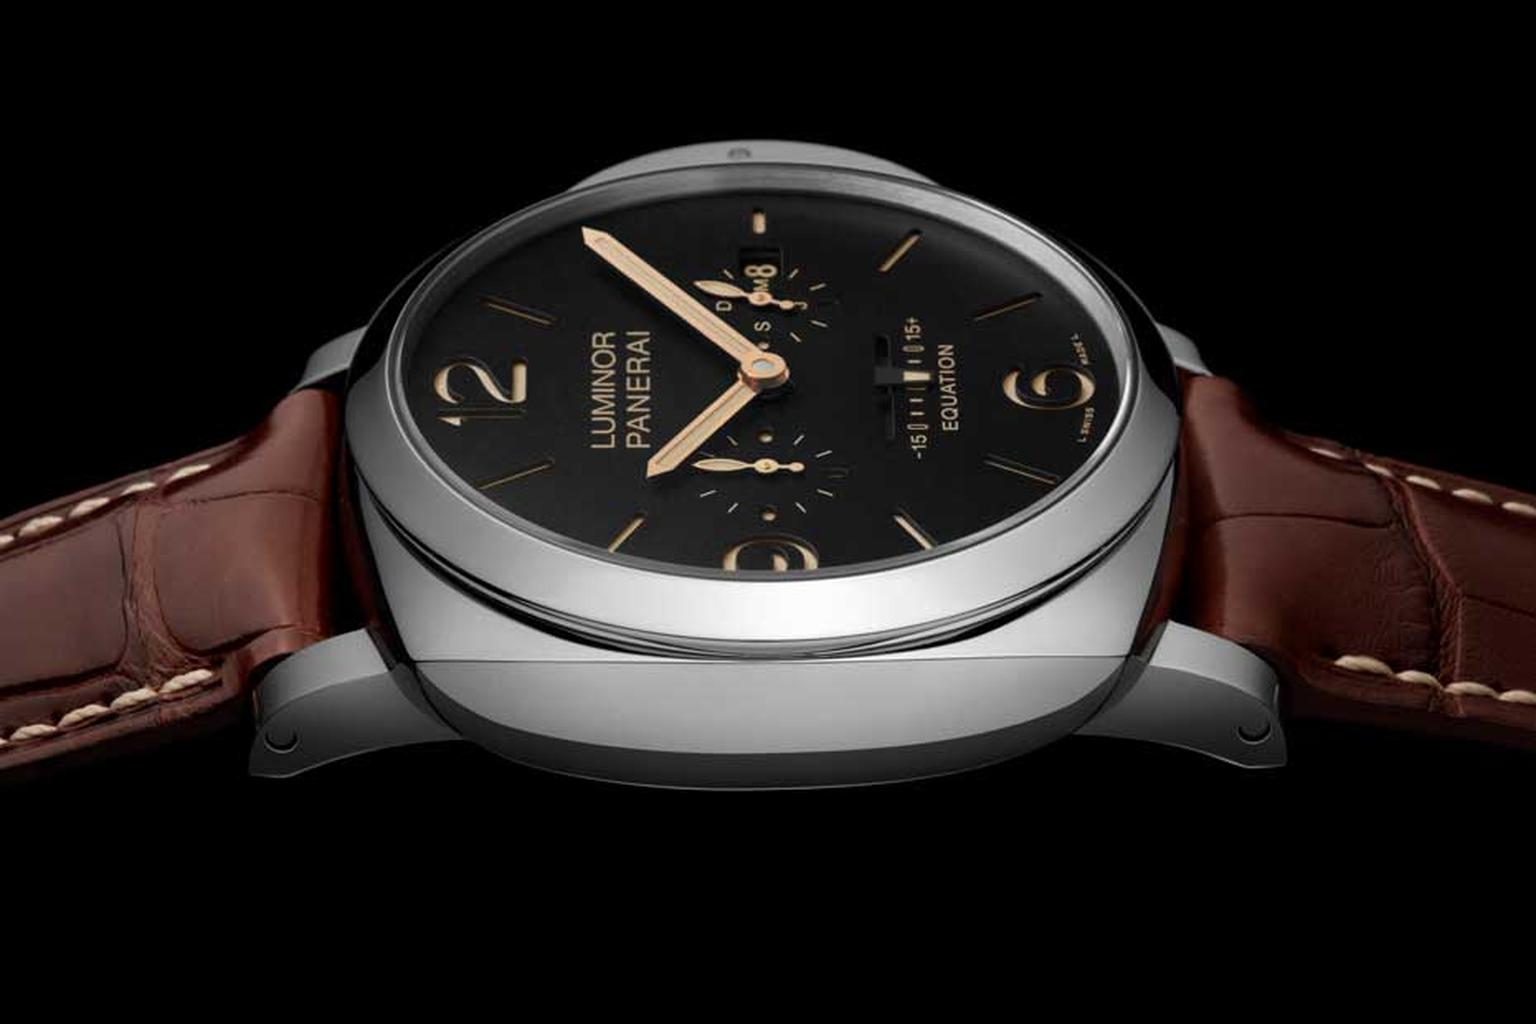 Panerai Luminor 1950 watch. To indicate the equation of time, Panerai has opted for a linear indicator on the matte black dial with a small pointer moving either towards the plus or negative 15-minute marker.